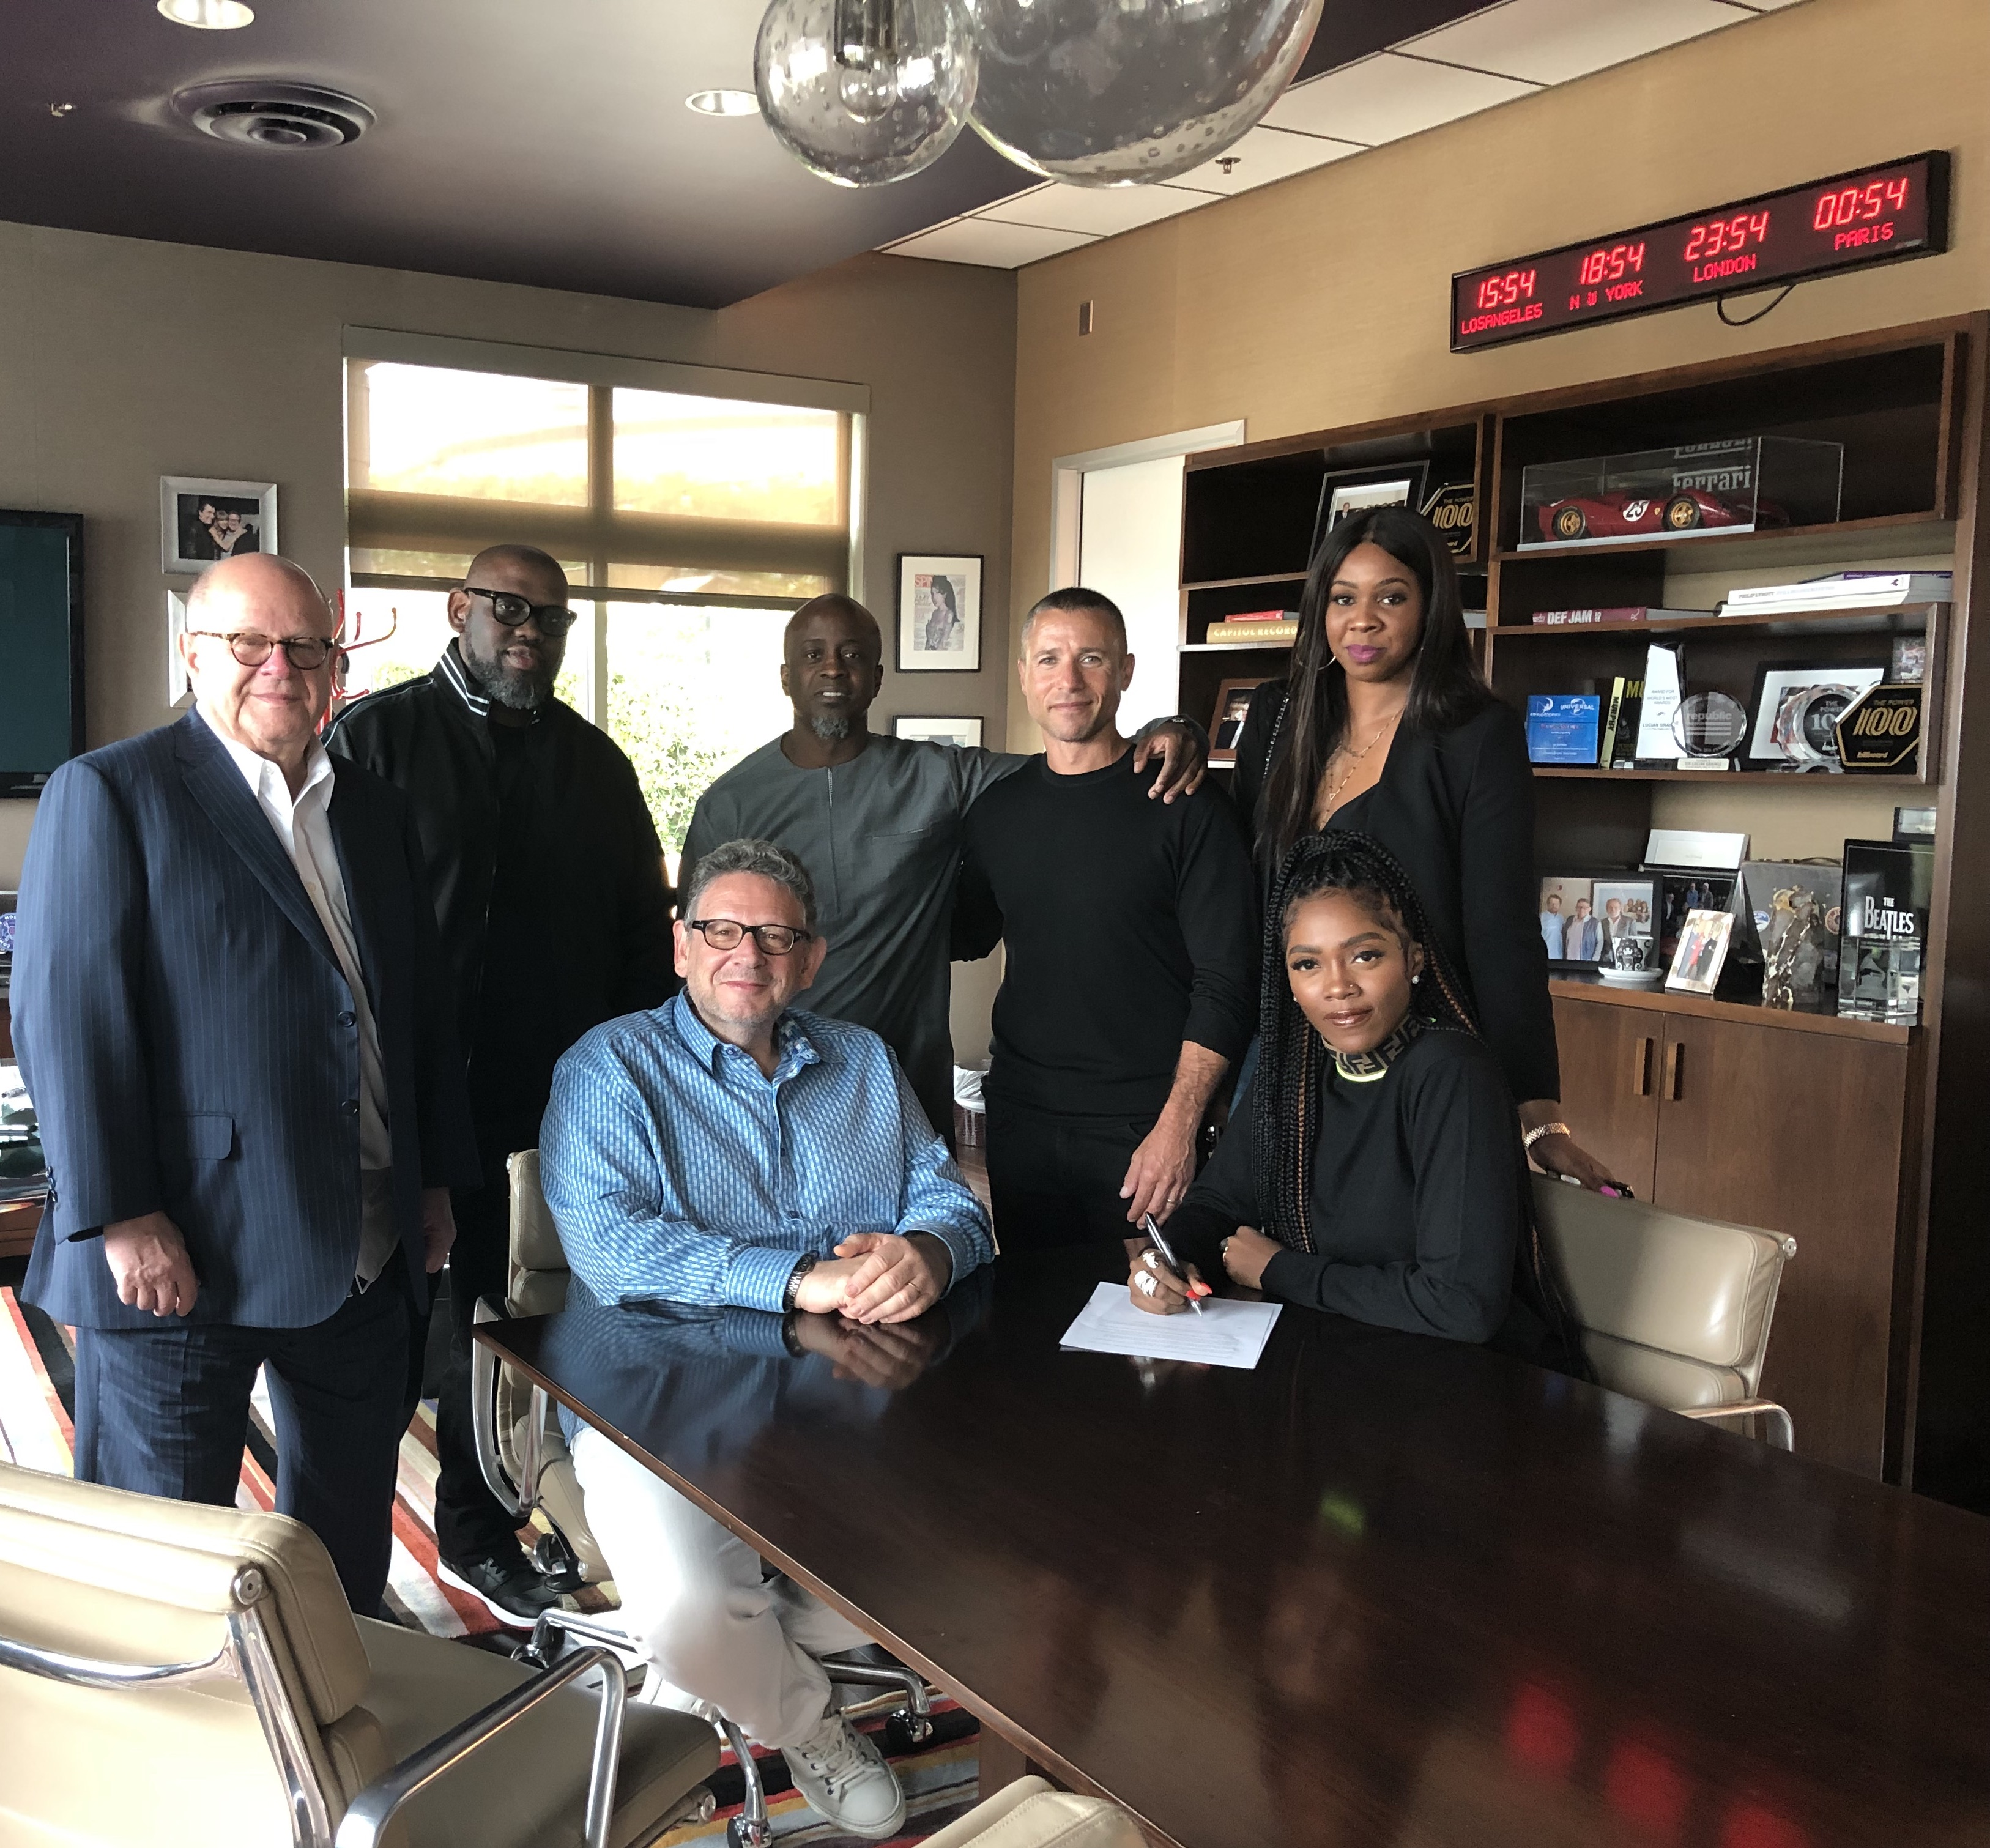 TIWA SAVAGE SIGNS EXCLUSIVE INTERNATIONAL DEAL WITH UNIVERSAL MUSIC GROUP